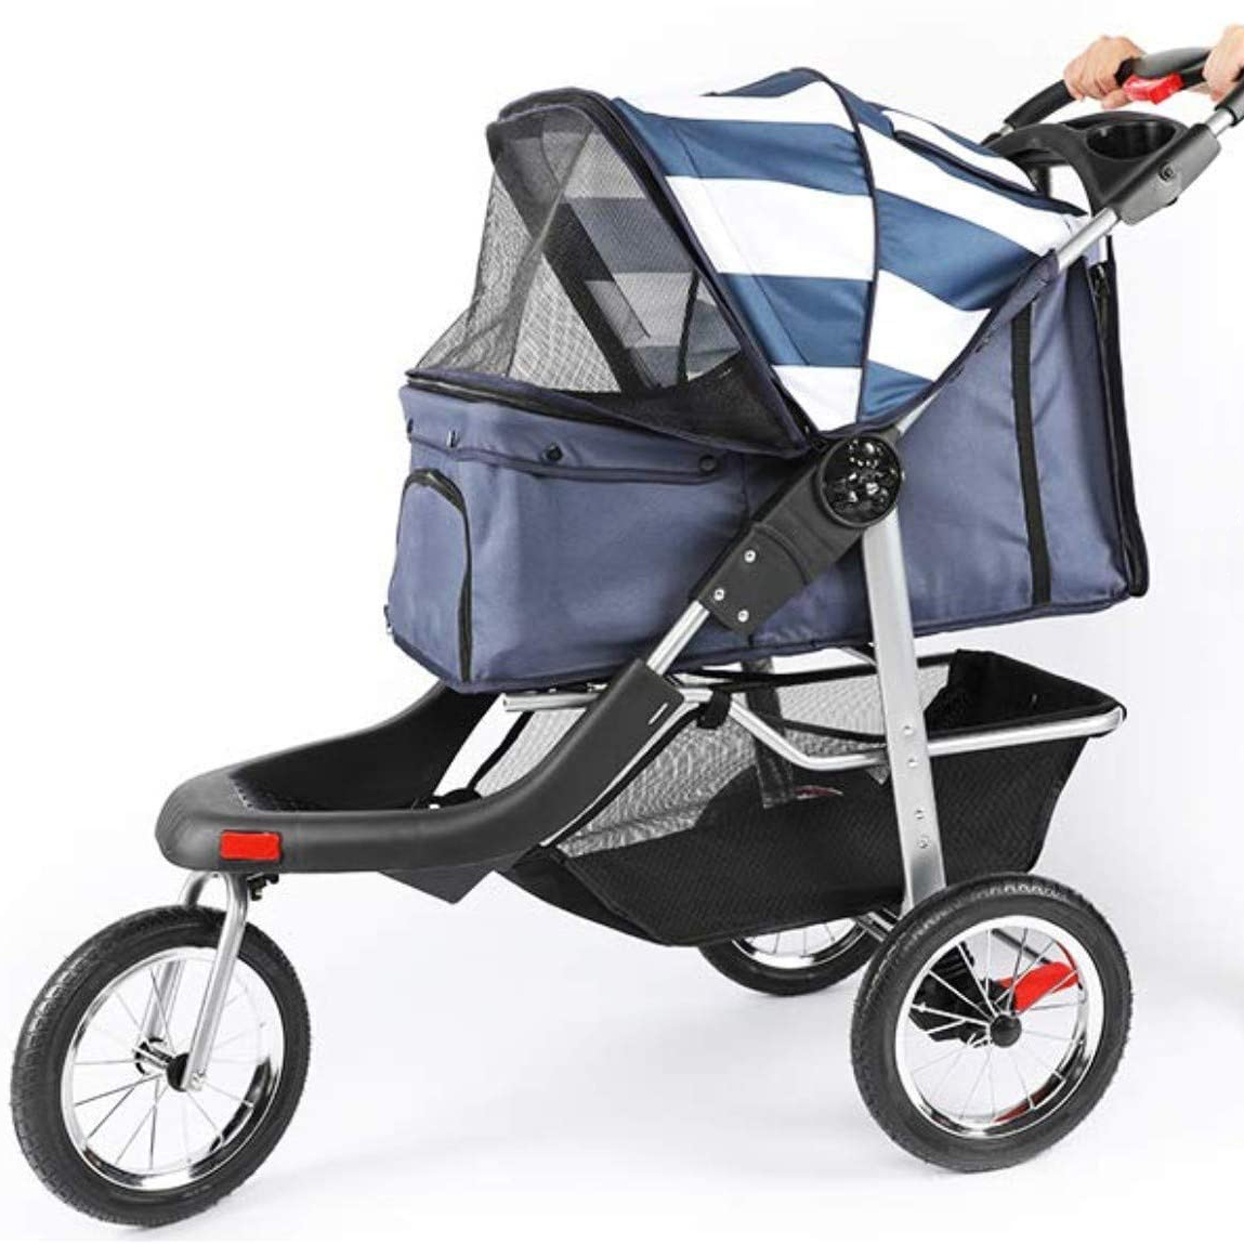 tubytime-foldable-pet-stroller-with-waterproof-cat-carrier